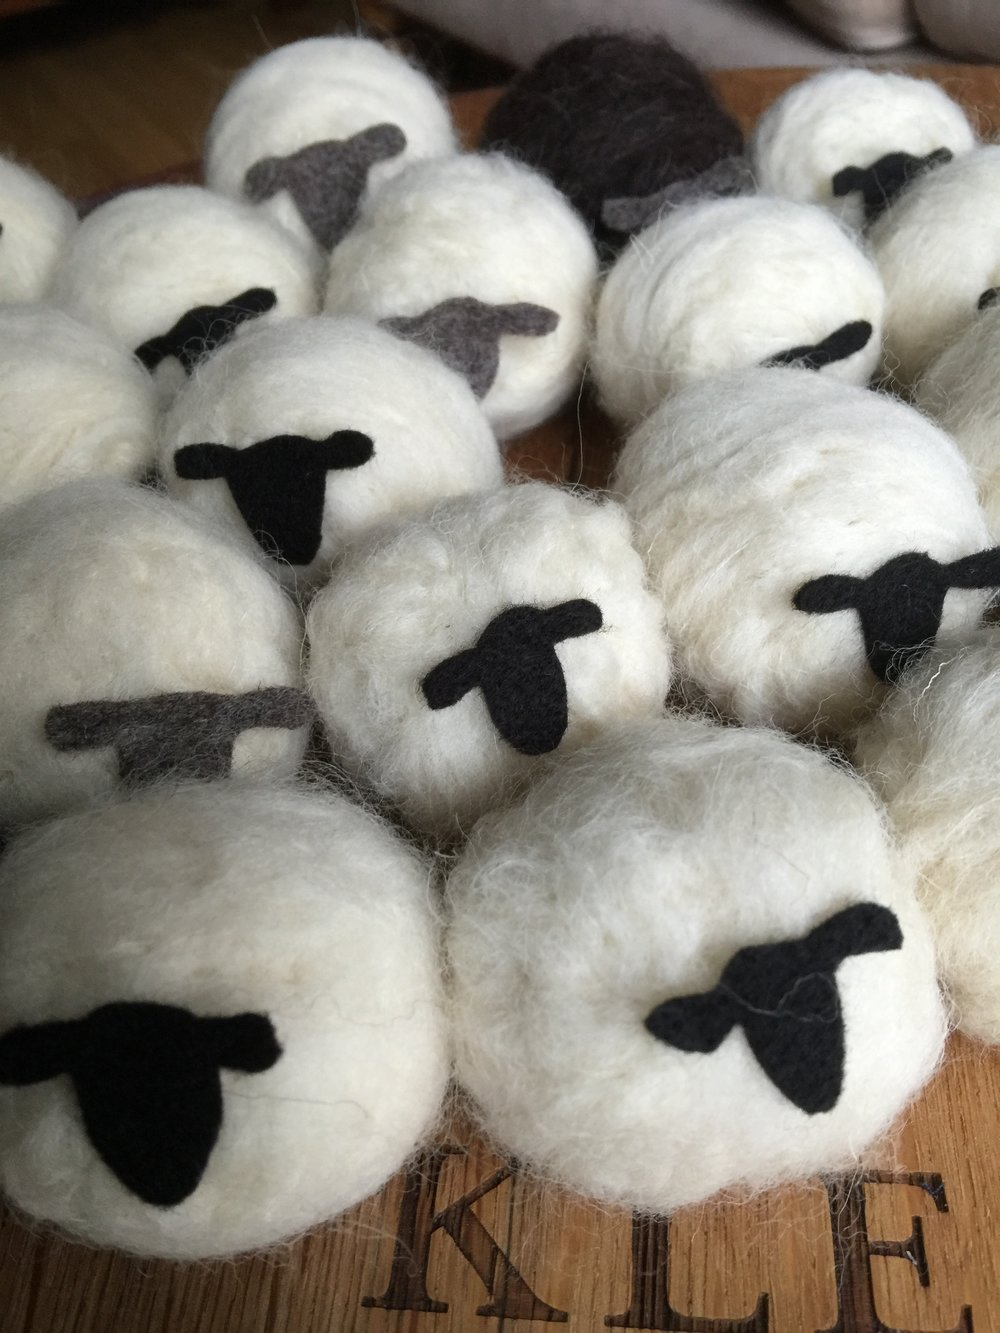 Needle felted hanging sheep.  Imagine a flock of sheep on your Christmas tree!  Use them all year round as decorations around your home